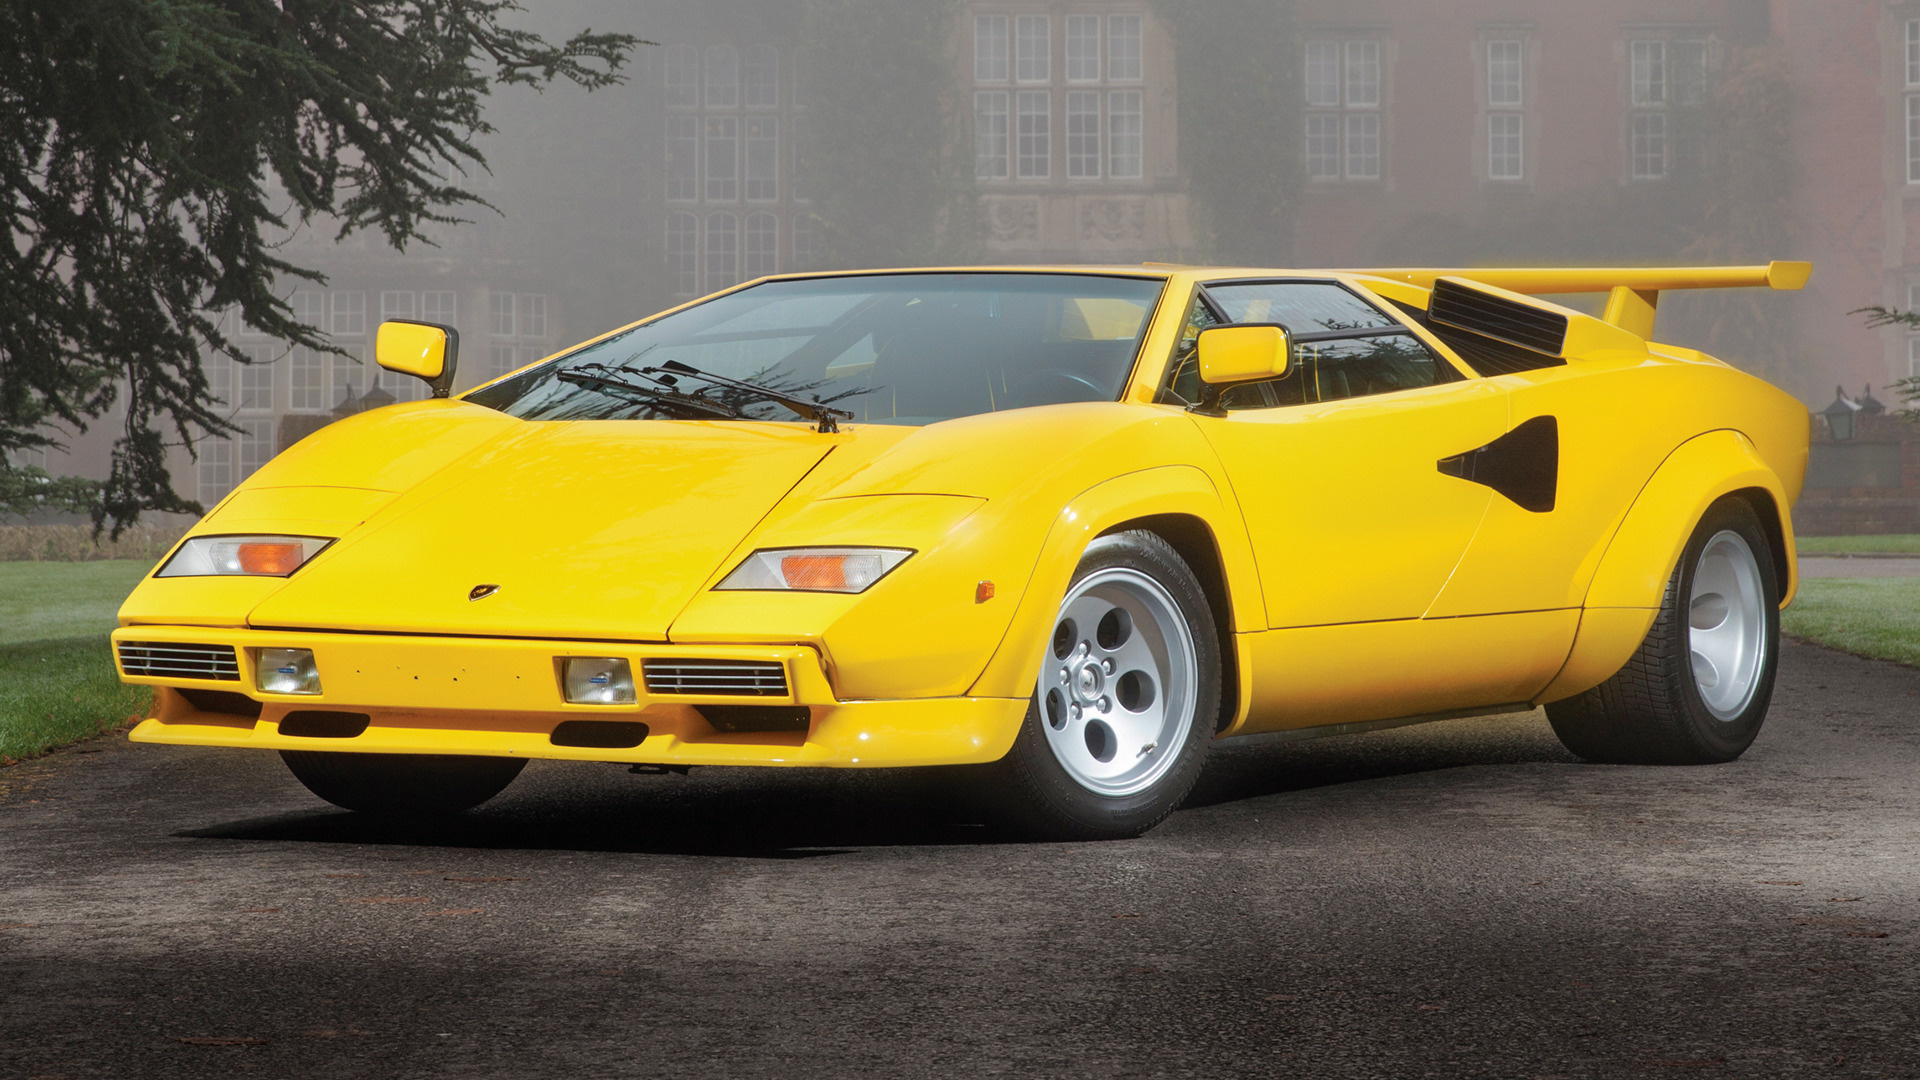 lamborghini countach s 1978 wallpapers and hd images. Black Bedroom Furniture Sets. Home Design Ideas